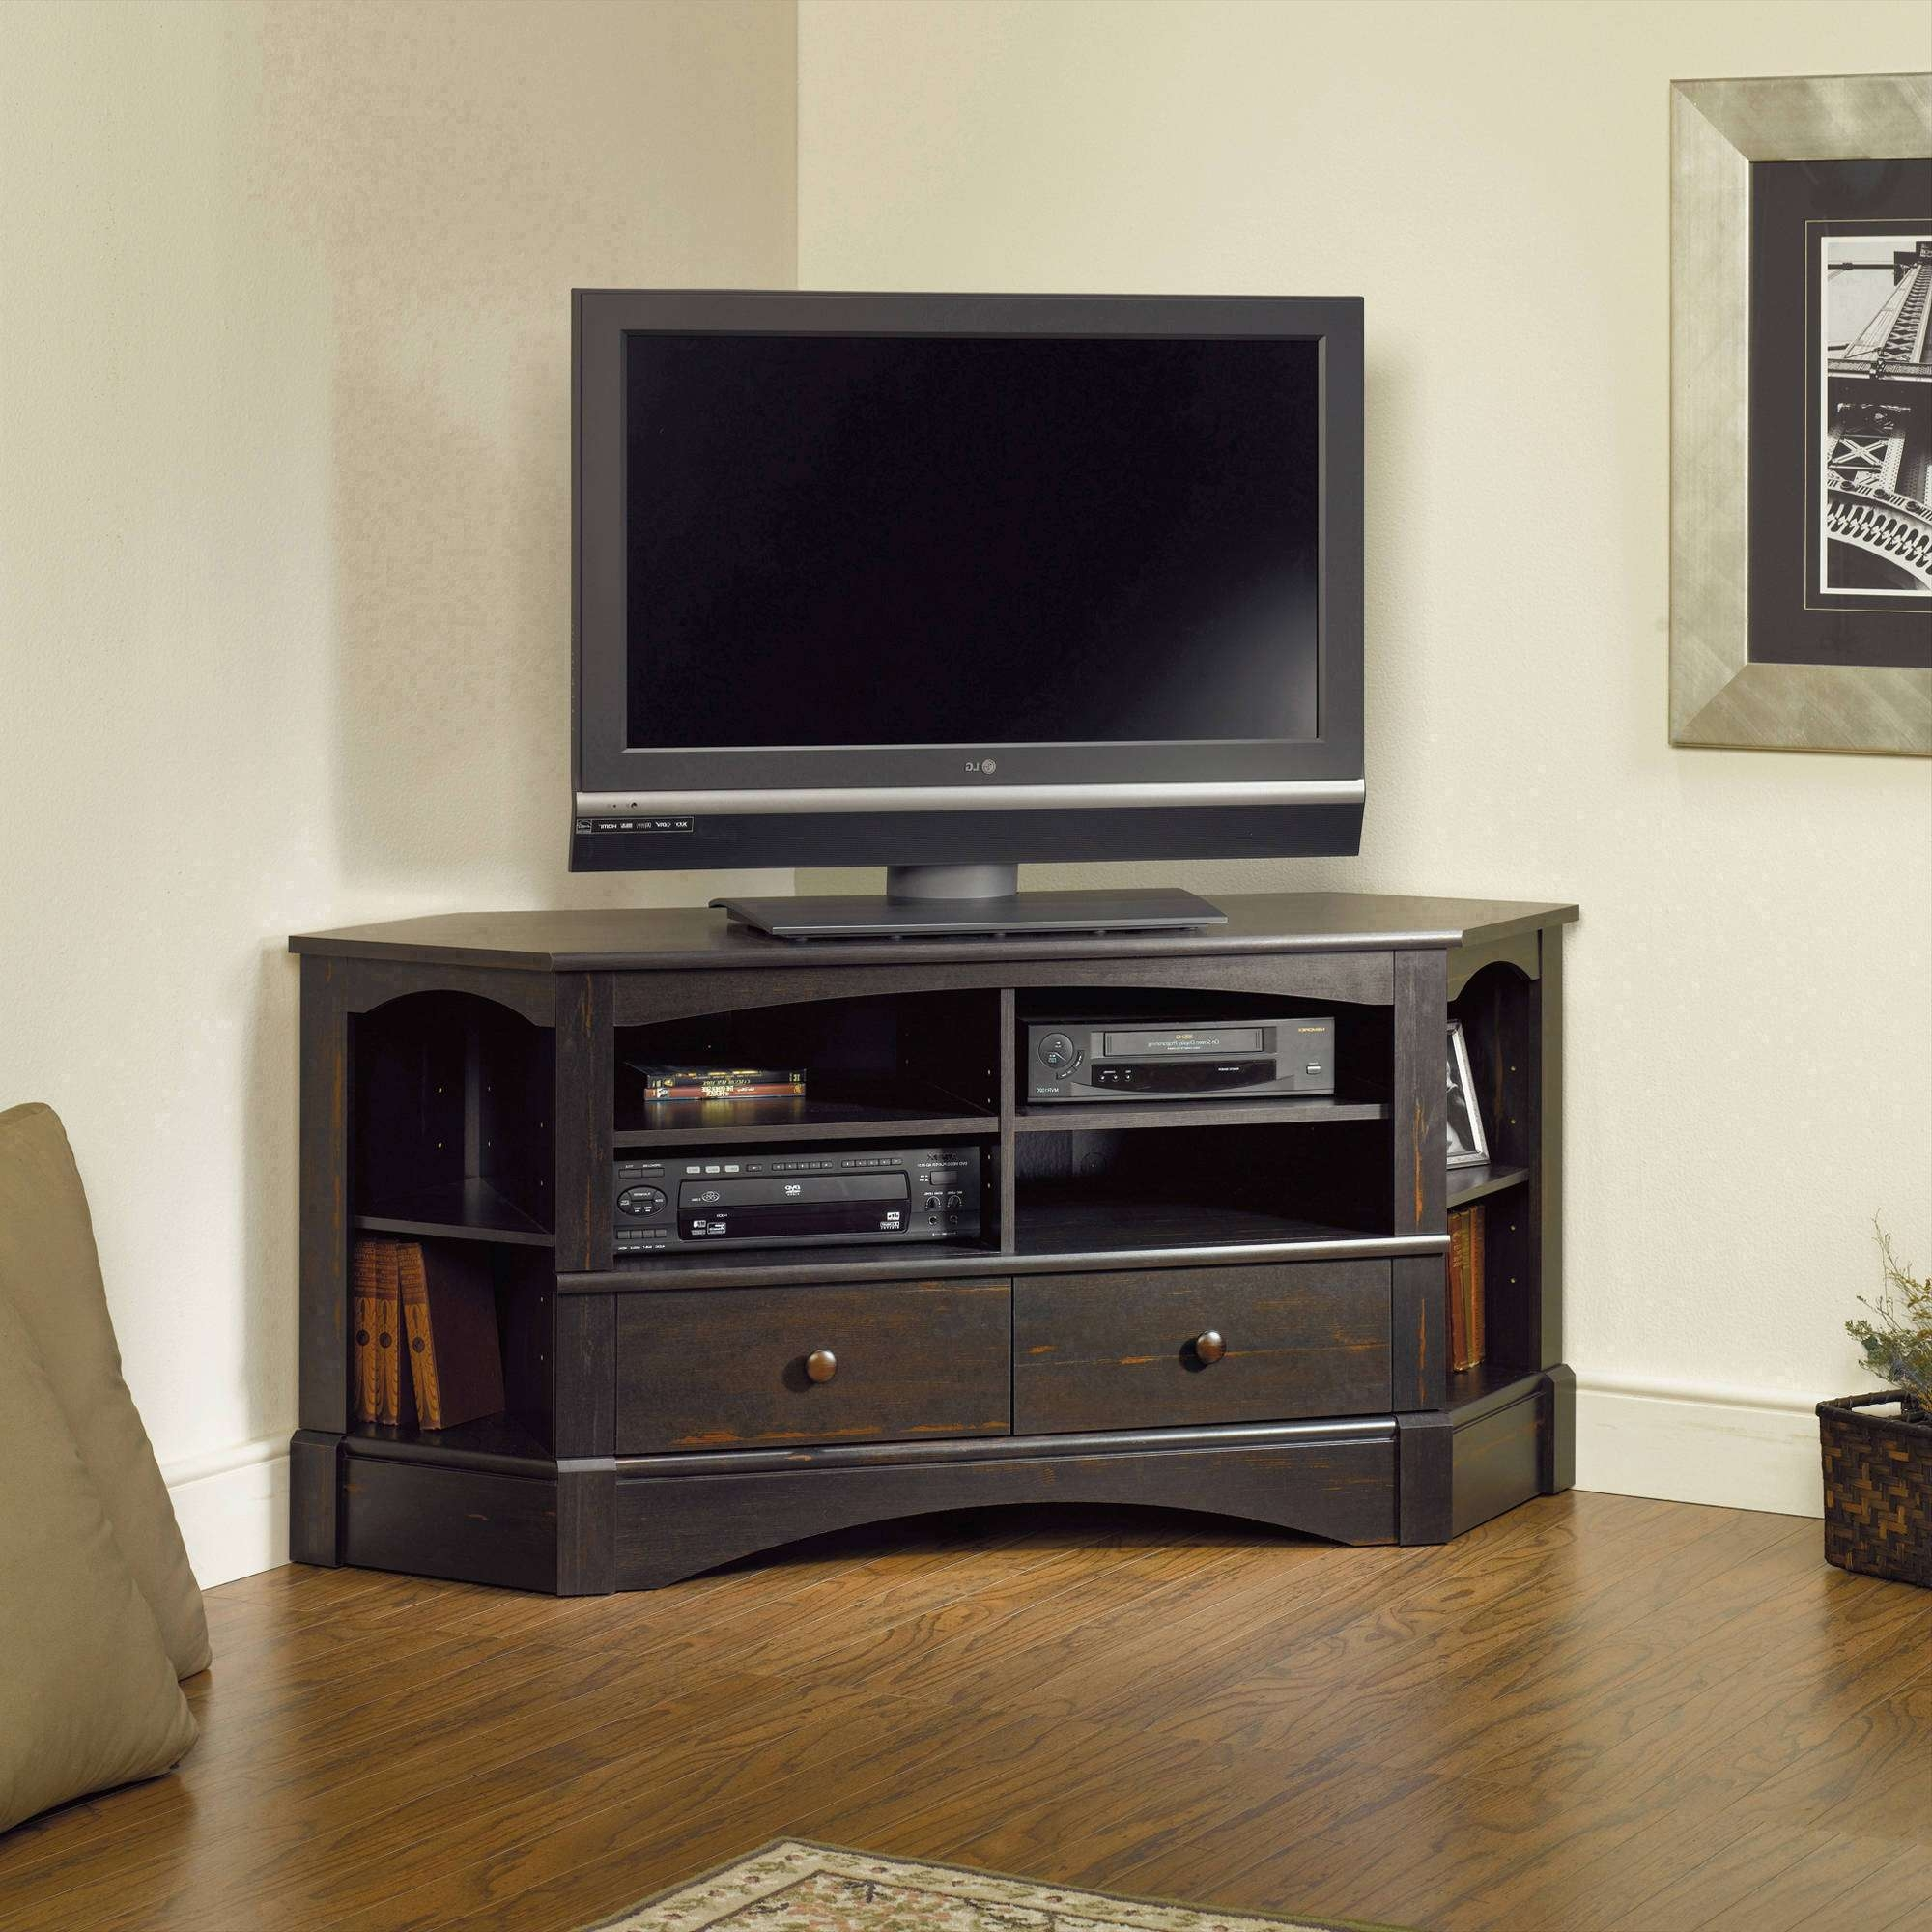 Tv Stand : 32 Unusual 55 Inch Corner Tv Stand With Mount Images Intended For Corner 60 Inch Tv Stands (View 6 of 15)